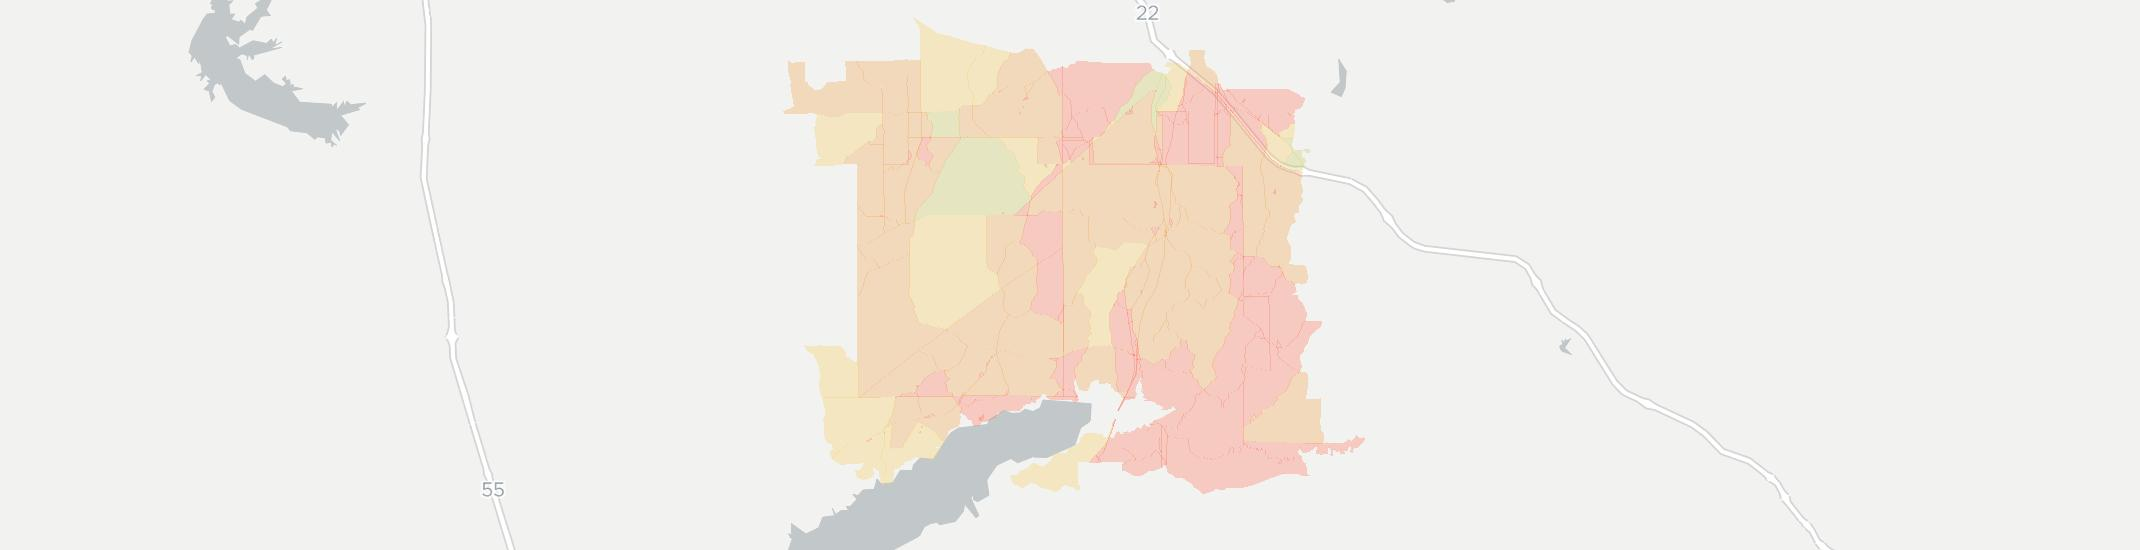 Waterford Internet Competition Map. Click for interactive map.